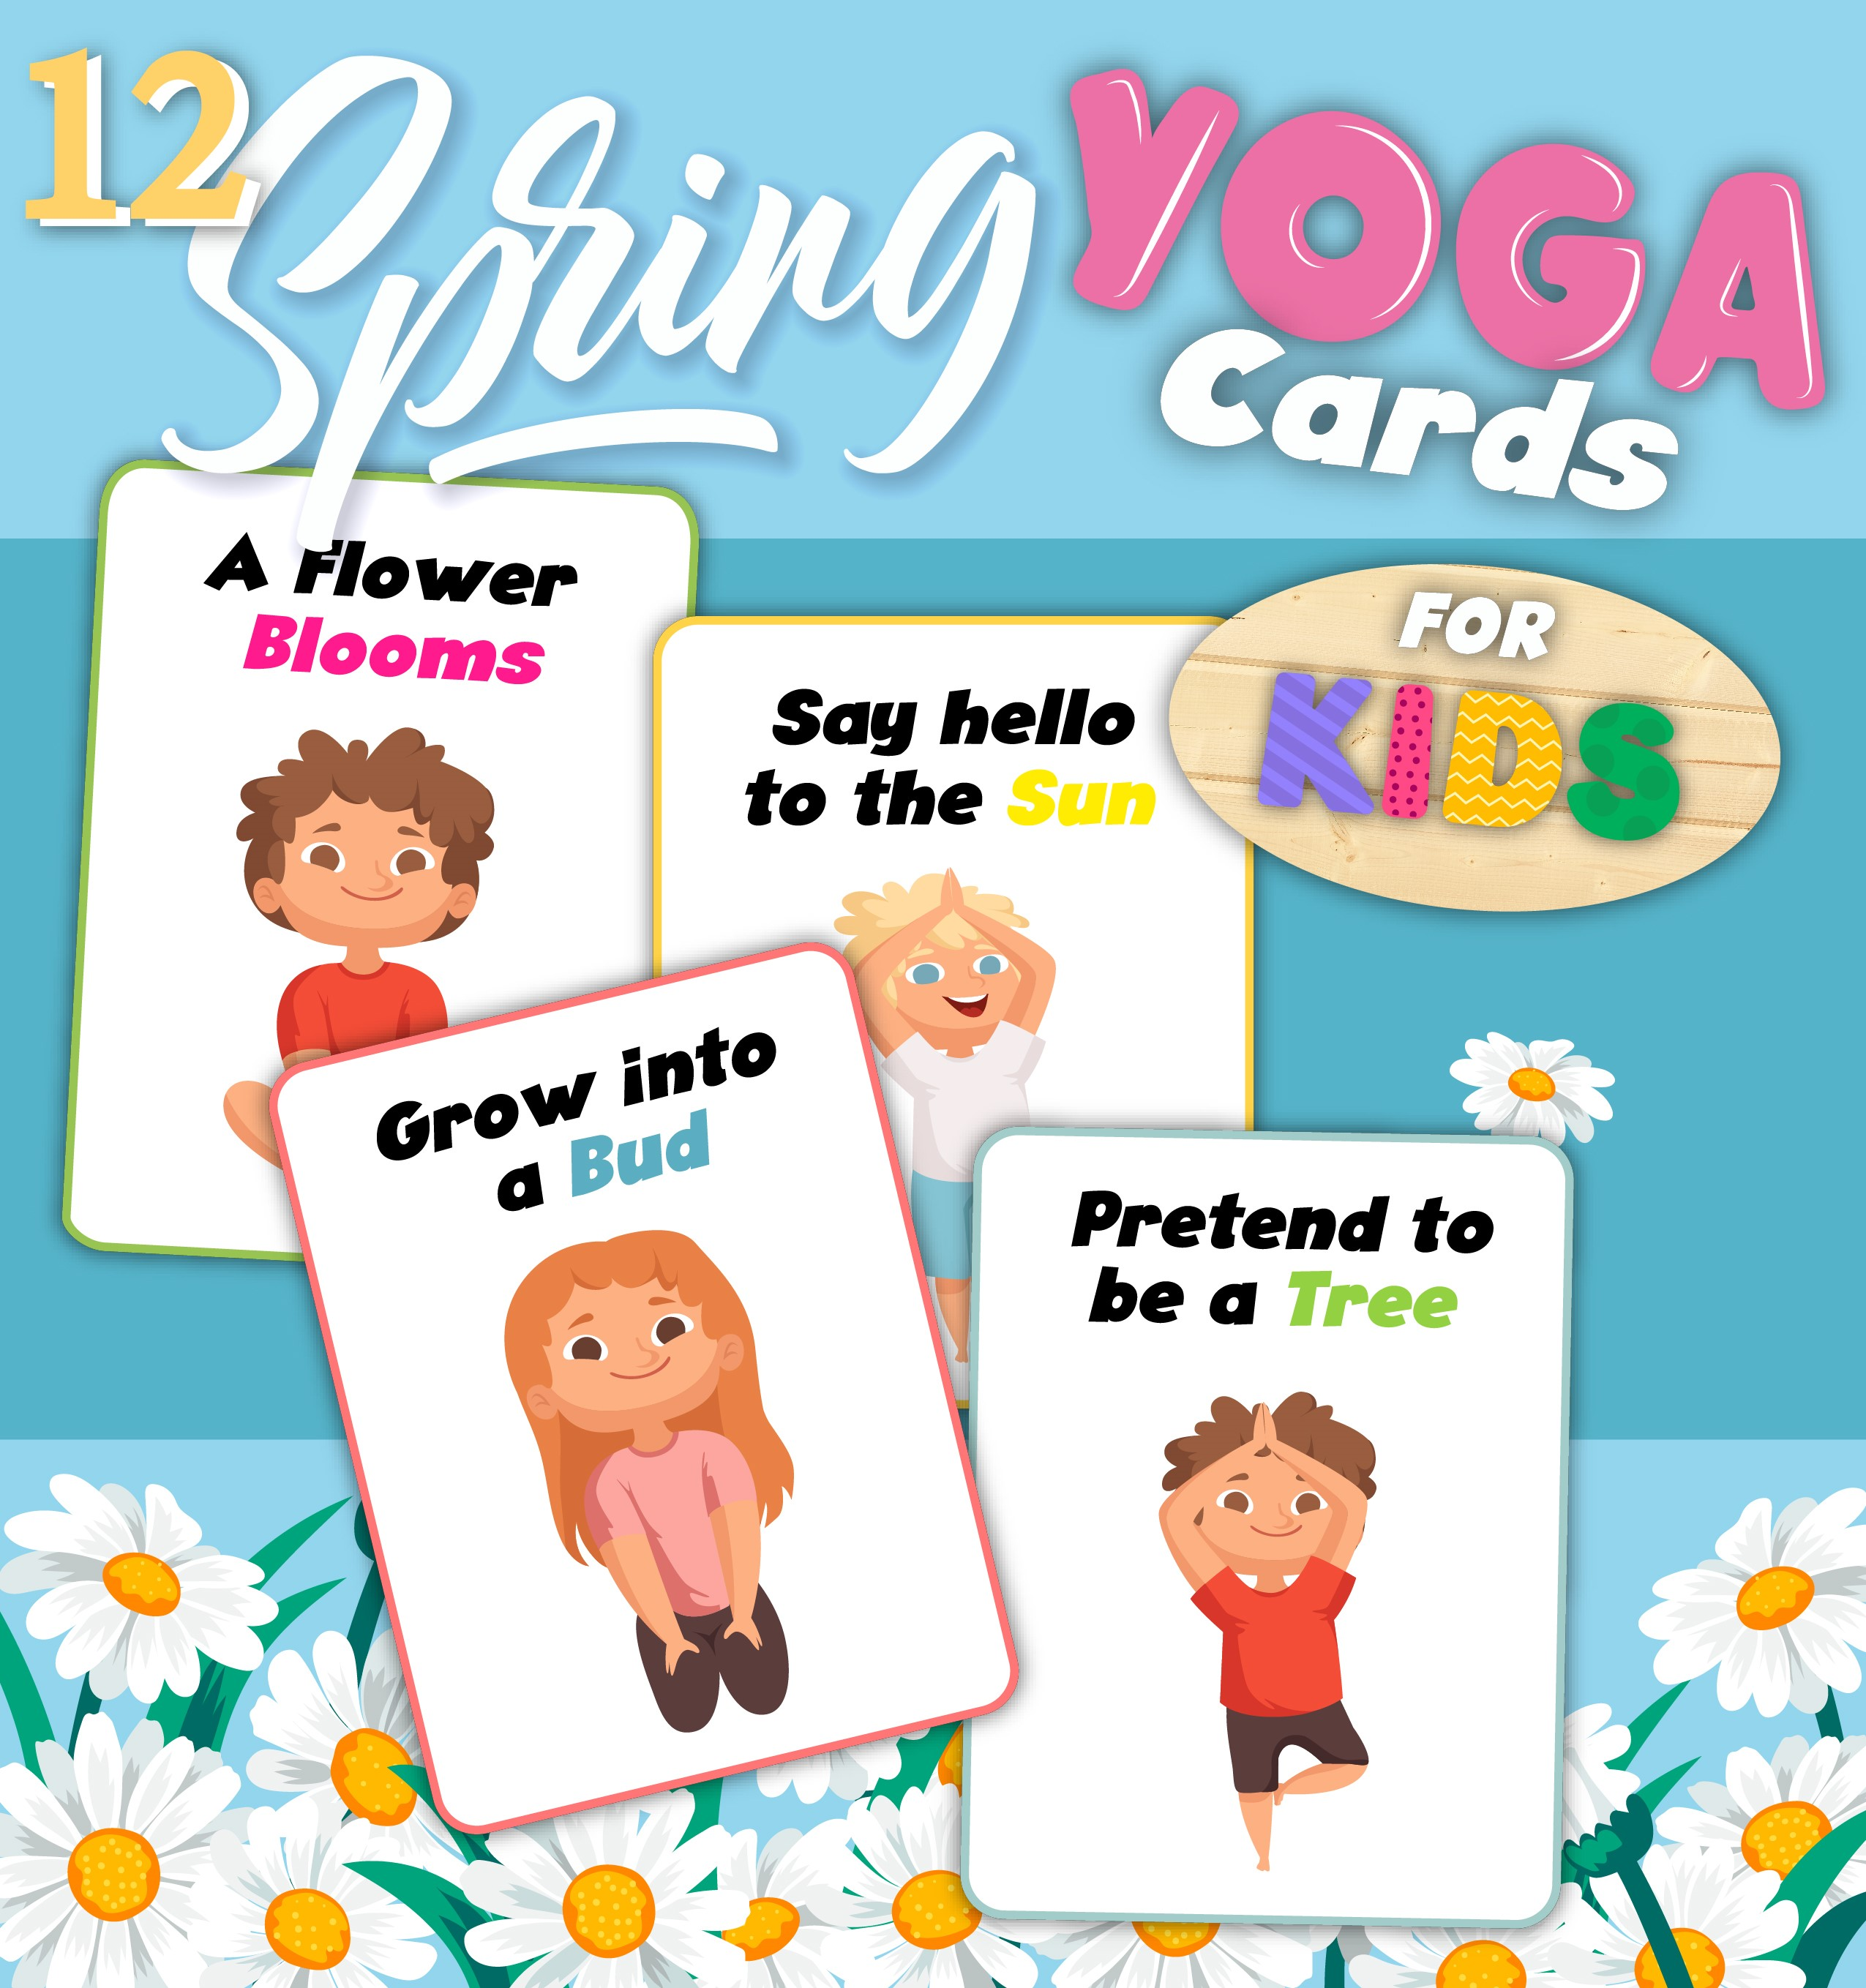 printable yoga cards for kids on a blue background with flowers with title text reading 12 Spring Yoga Cards for kids